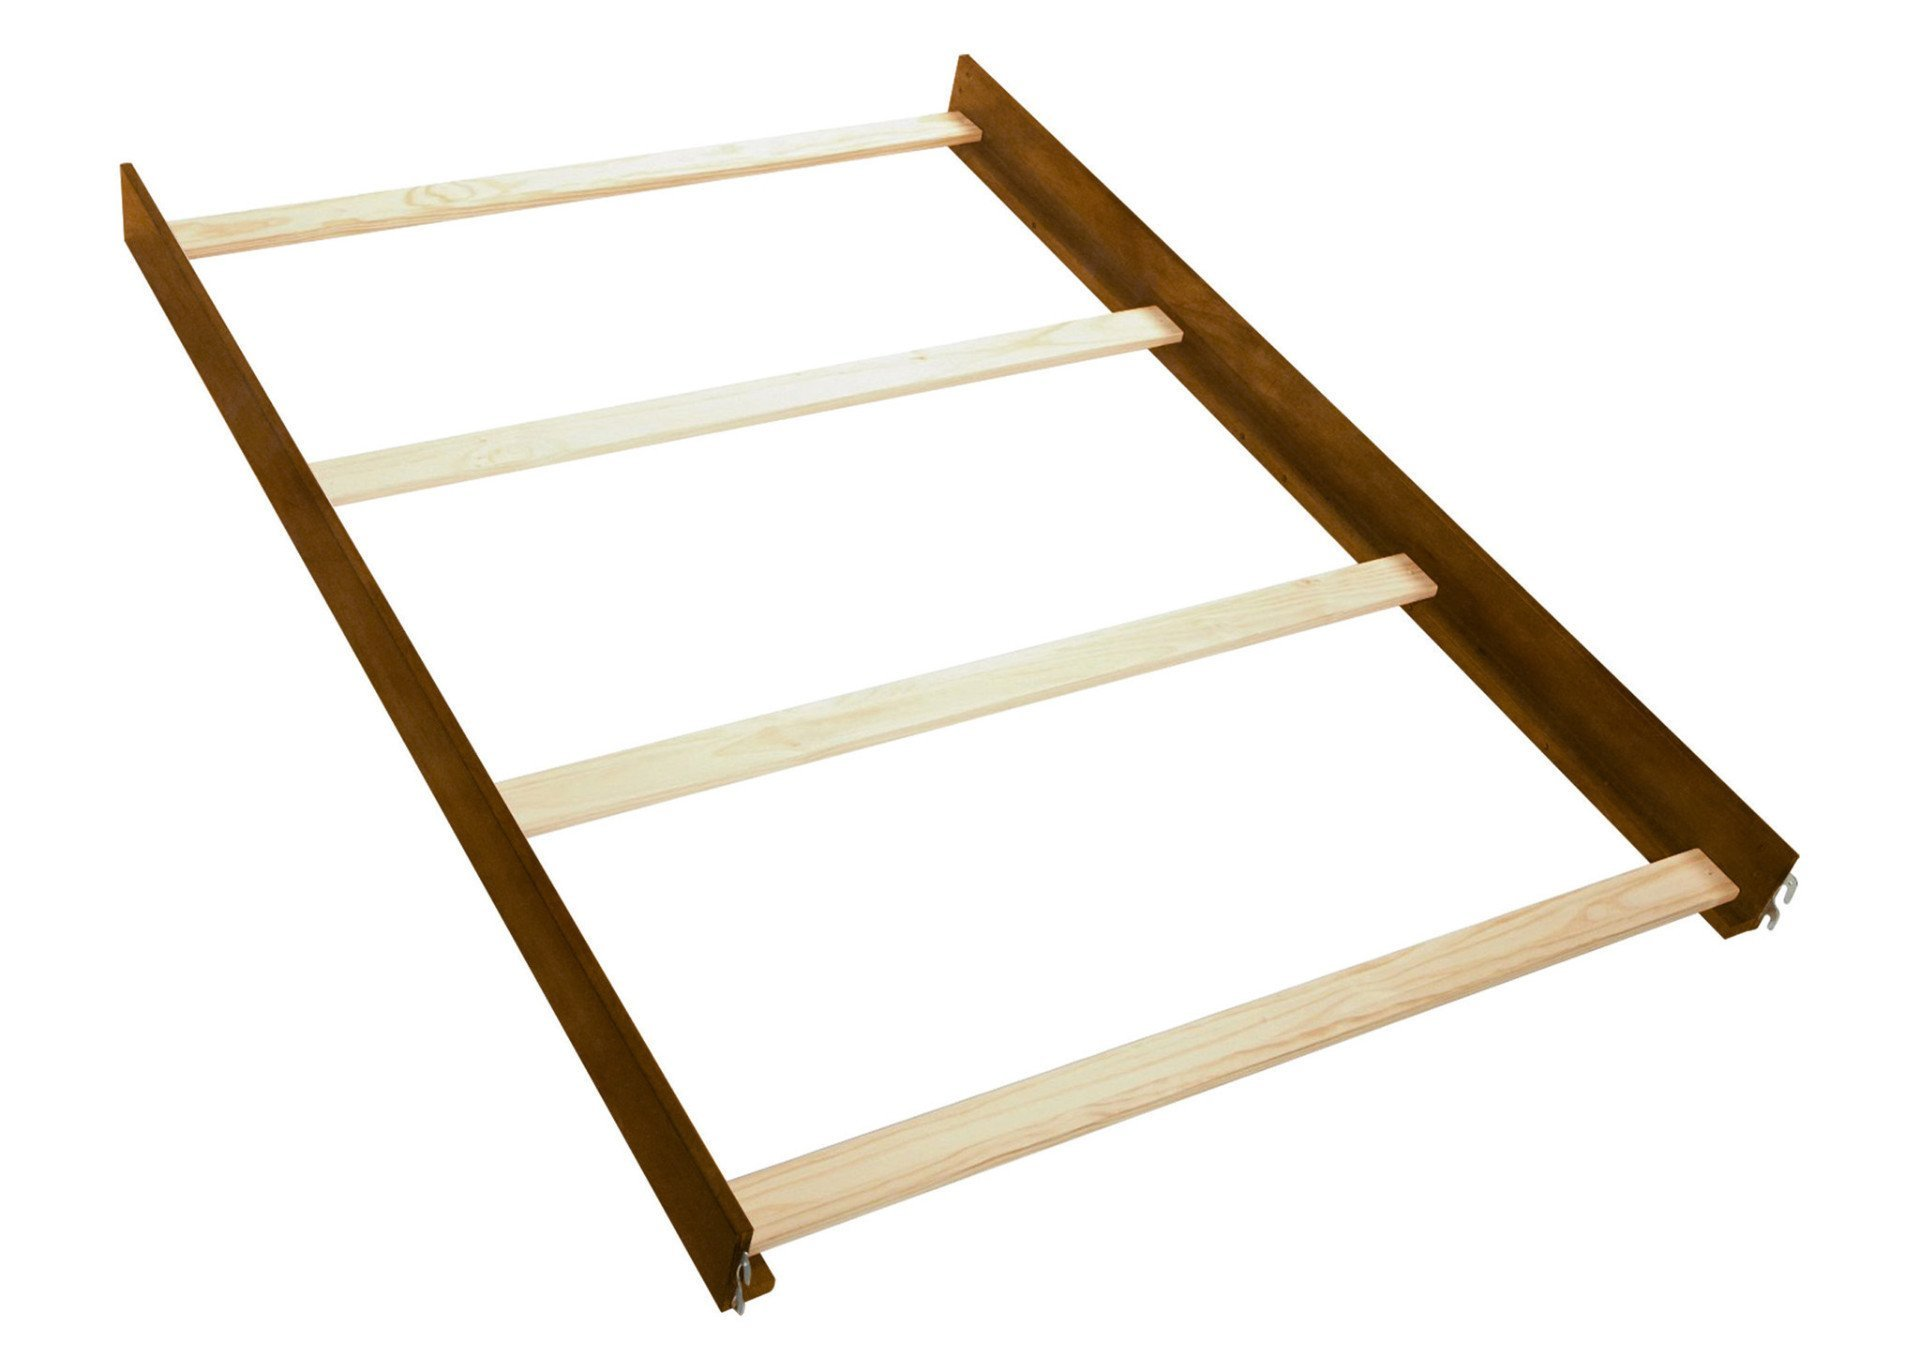 Simmons/Delta Chateau Crib 'N' More Crib Full Size Conversion Kit Bed Rails - Pecan